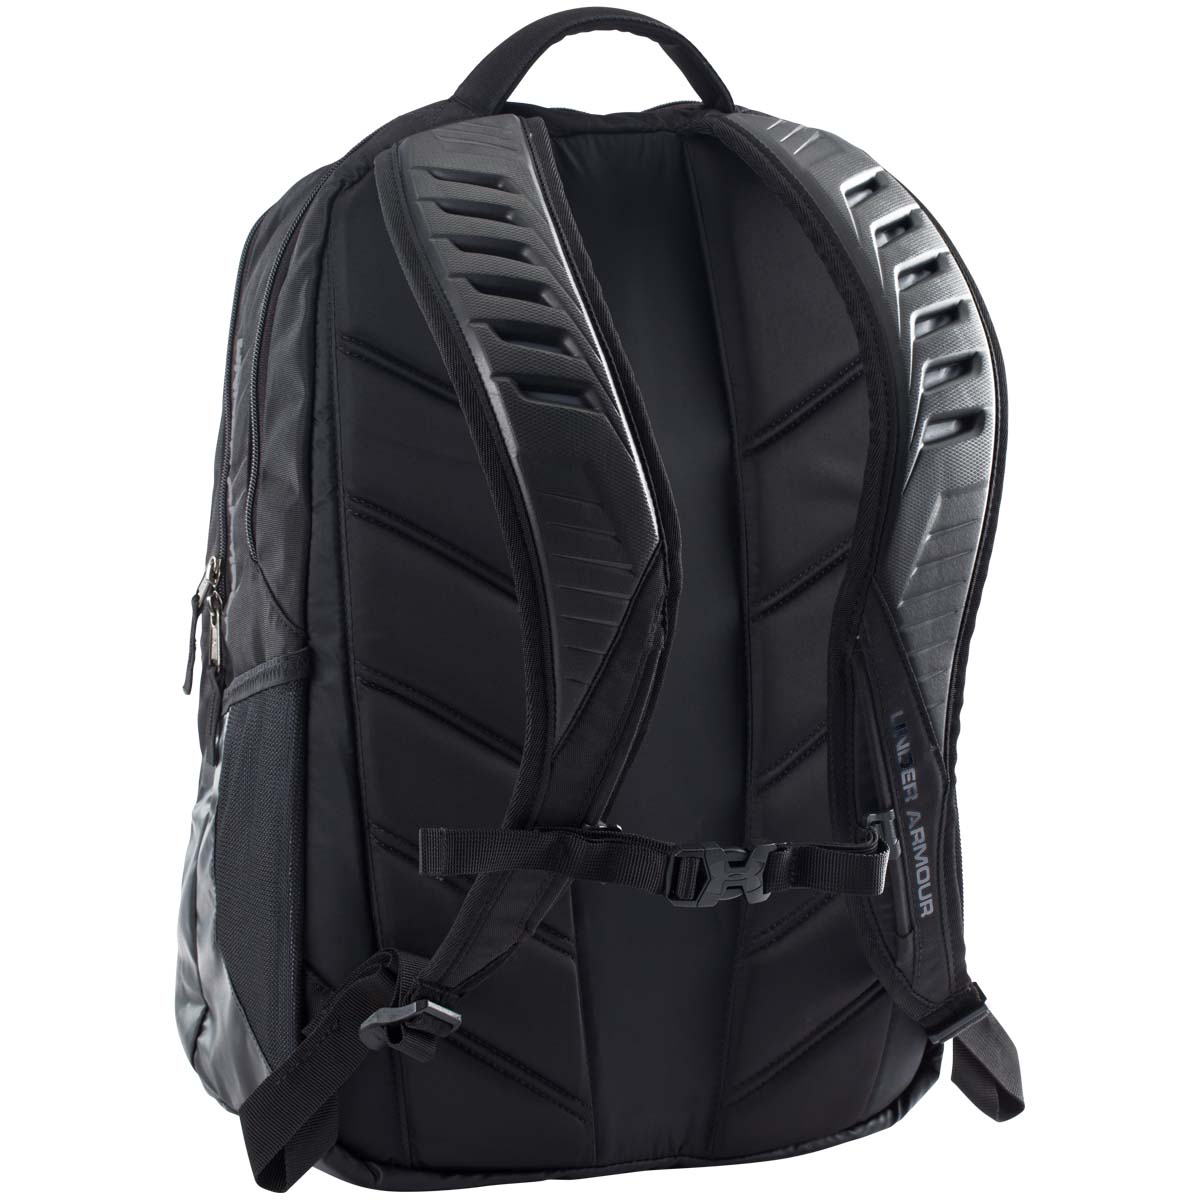 1551c79a55b7 under armour camden backpack cheap   OFF39% The Largest Catalog Discounts